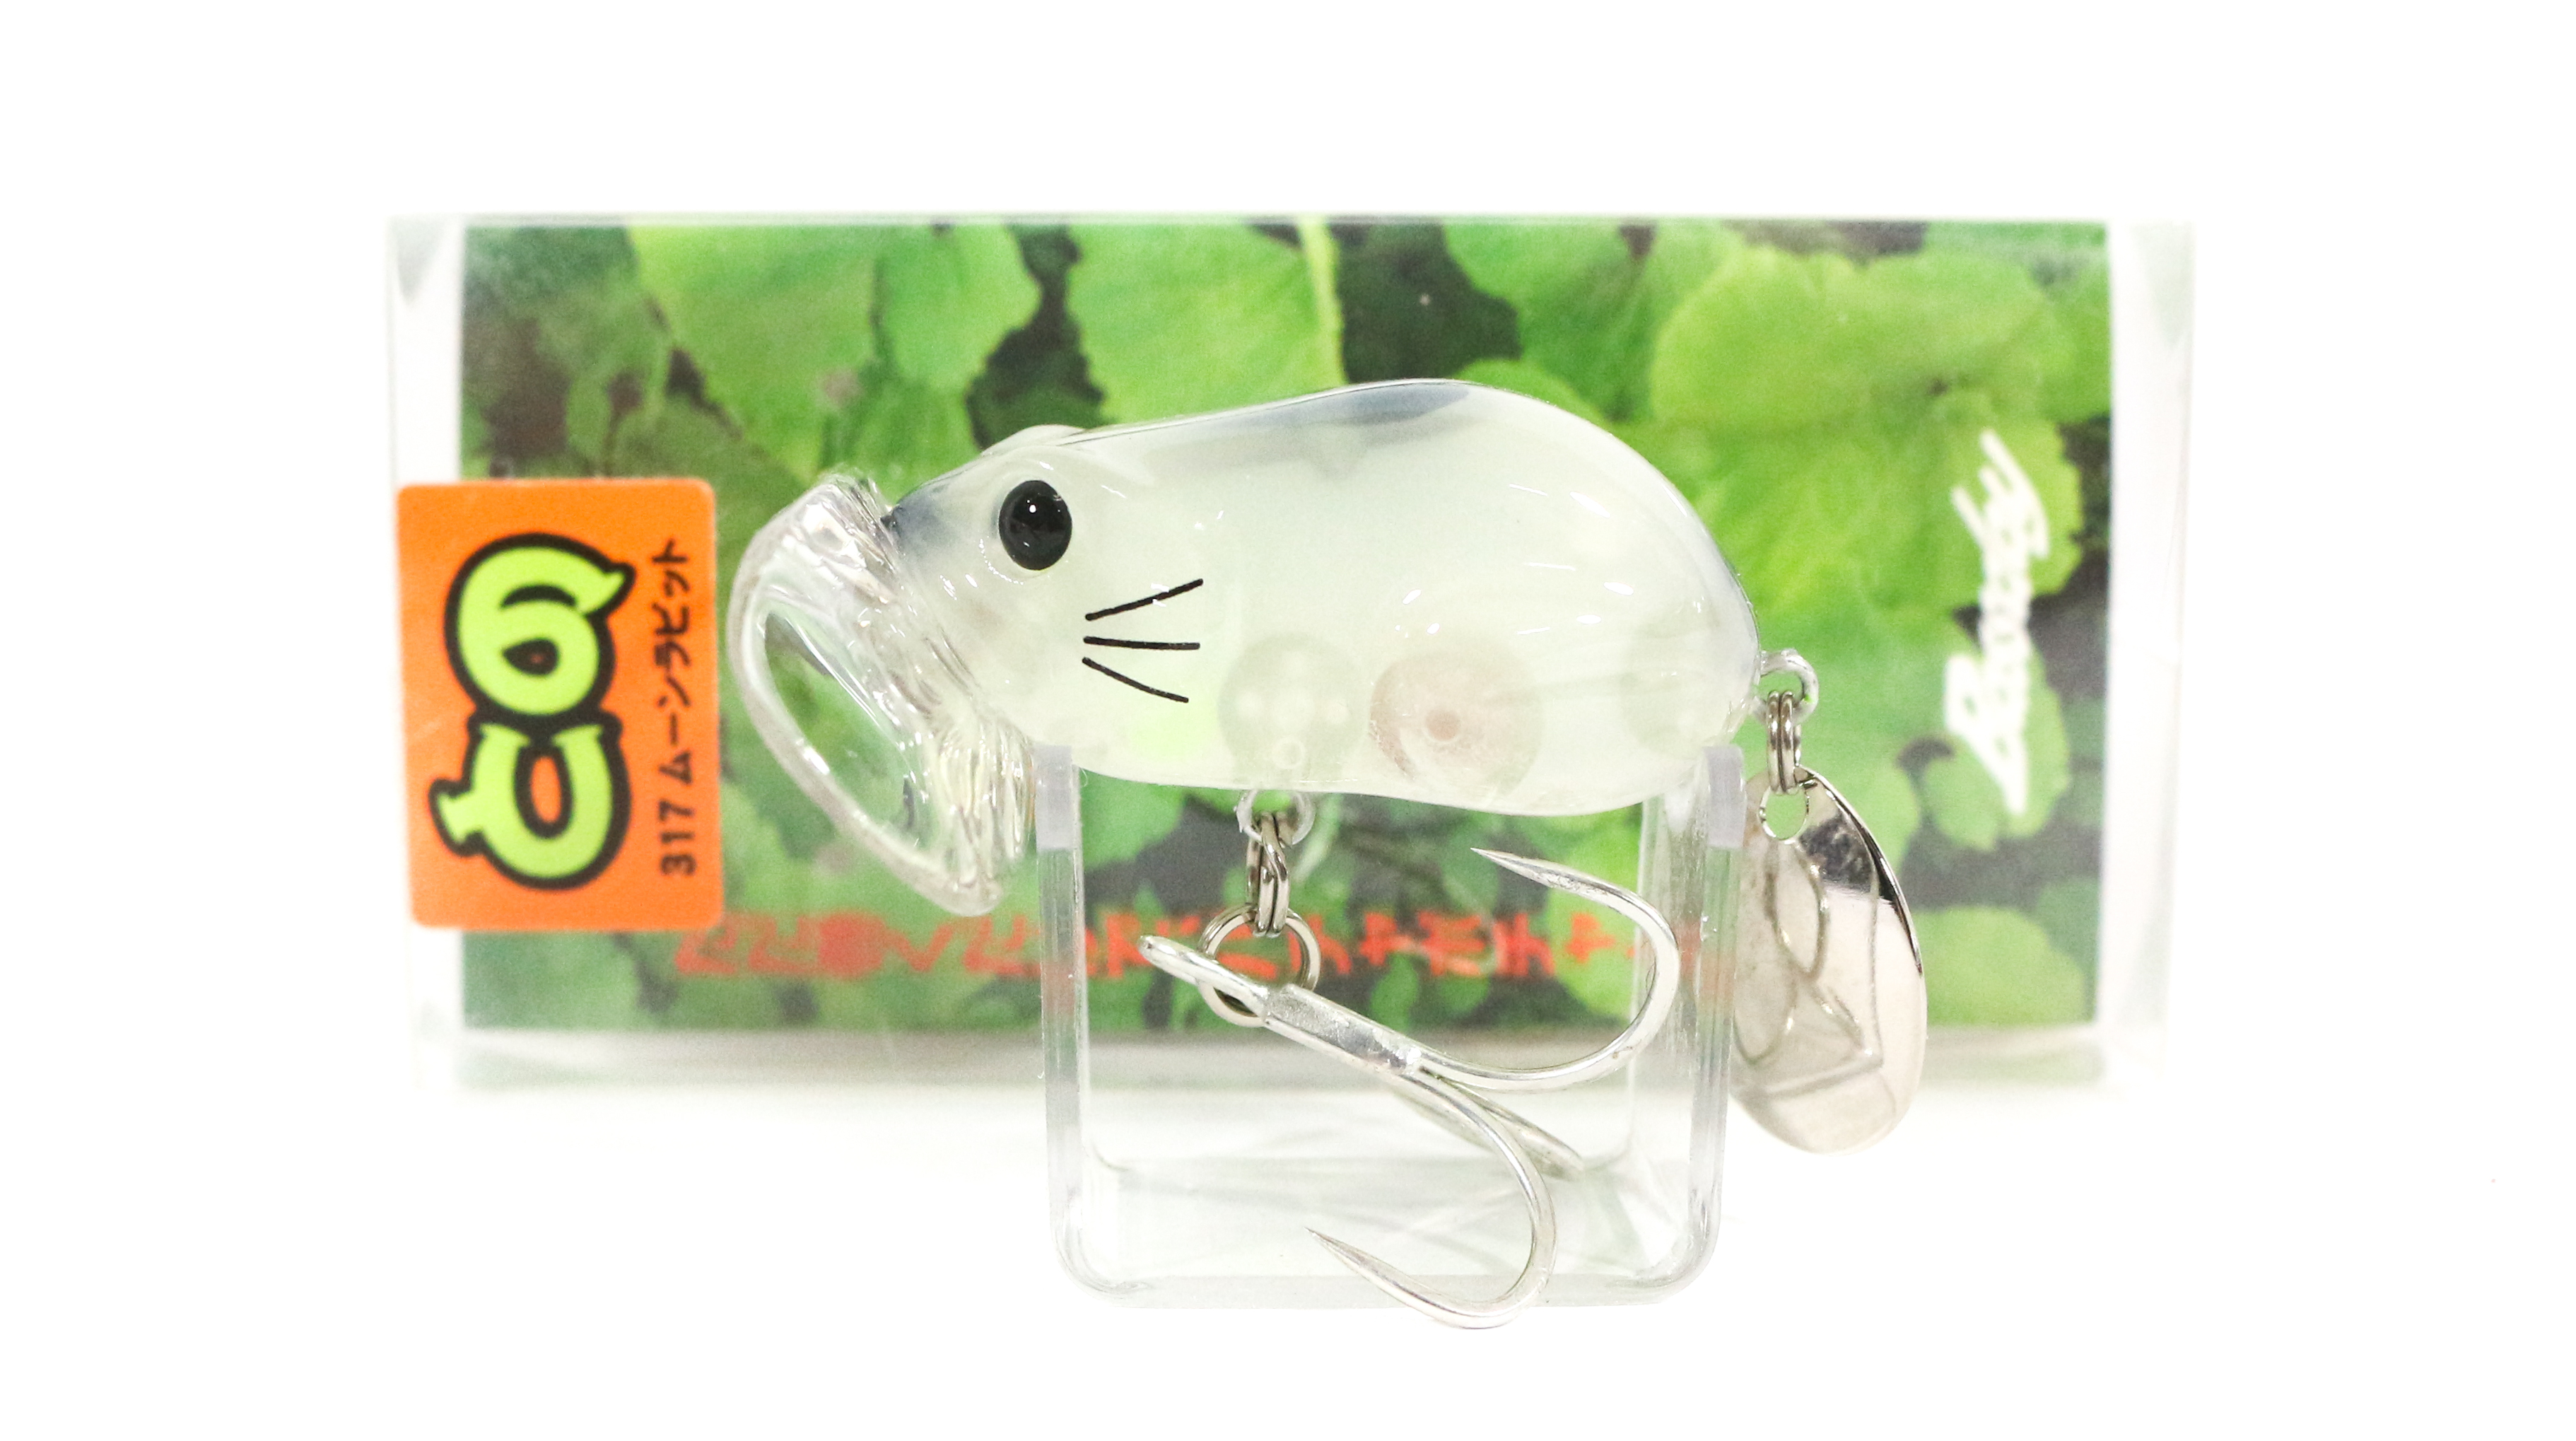 Bassday Tono Frog Floating Lure 10 grams 317 (4186)